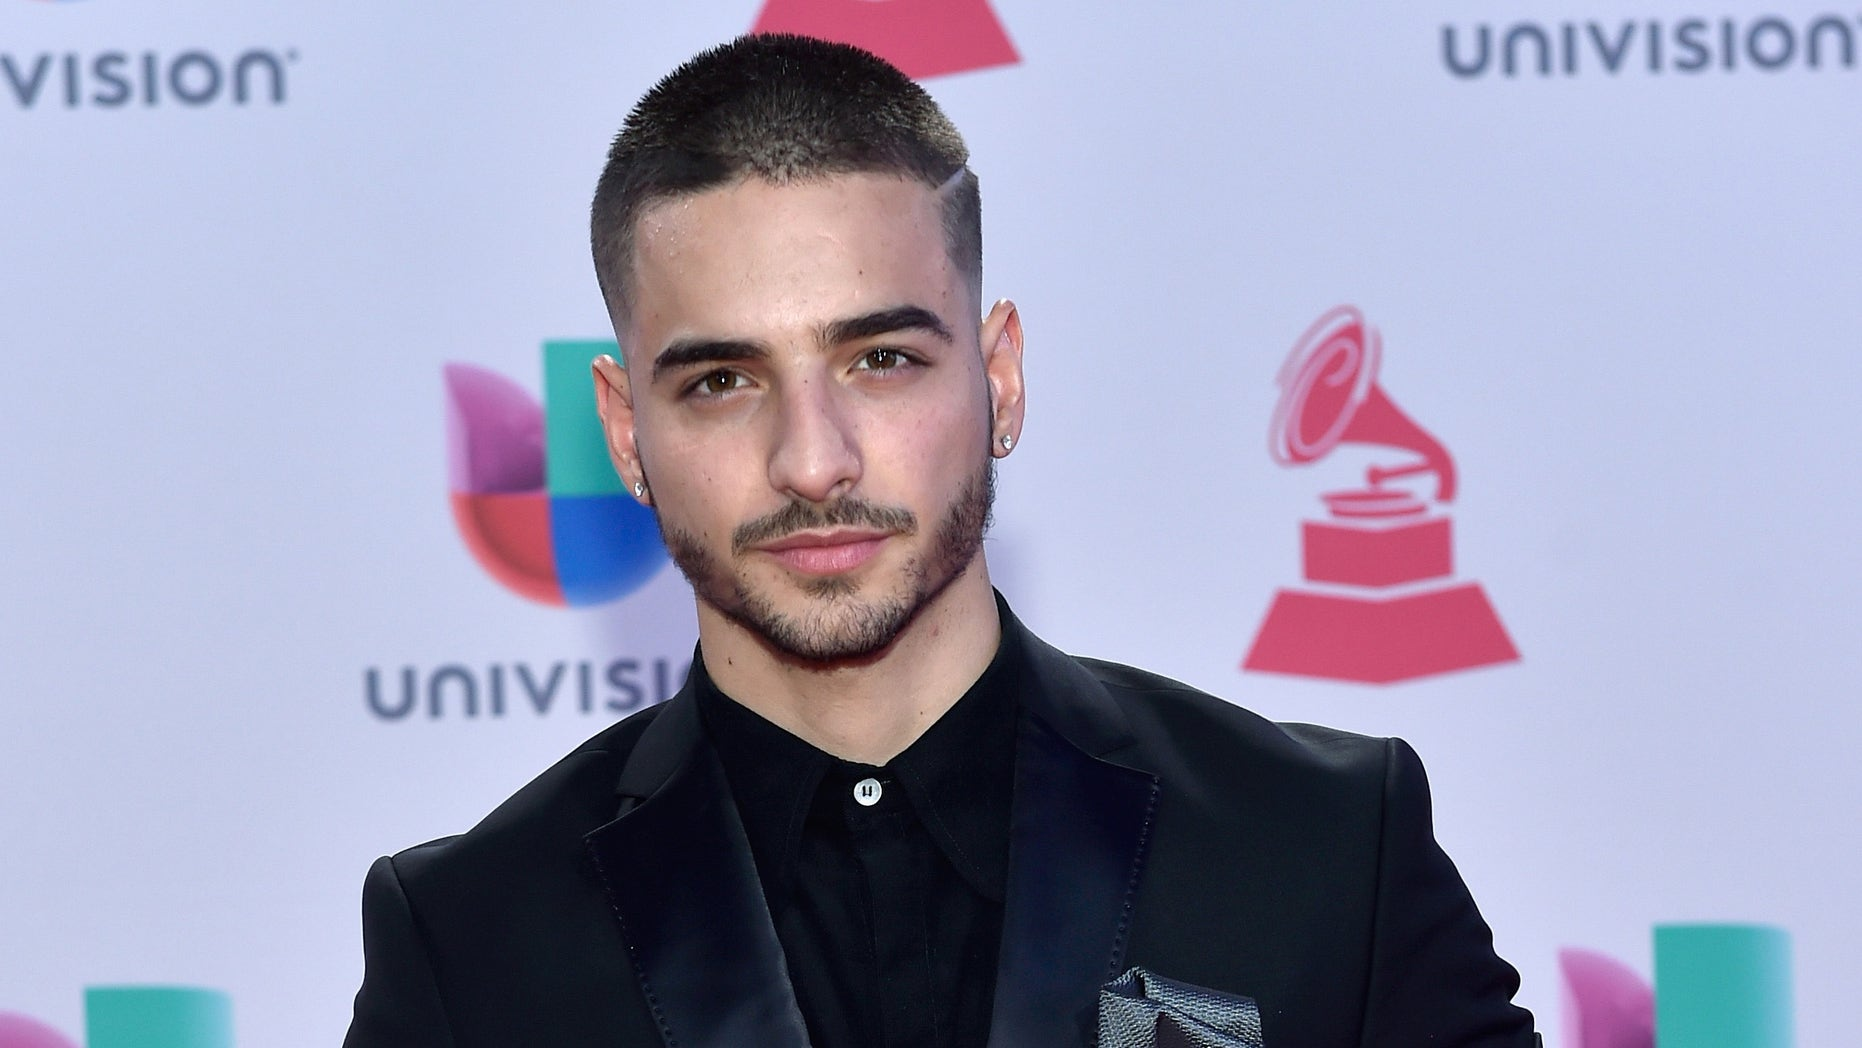 LAS VEGAS, NV - NOVEMBER 19:  Recording artist Maluma attends the 16th Latin GRAMMY Awards at the MGM Grand Garden Arena on November 19, 2015 in Las Vegas, Nevada.  (Photo by David Becker/Getty Images for LARAS)